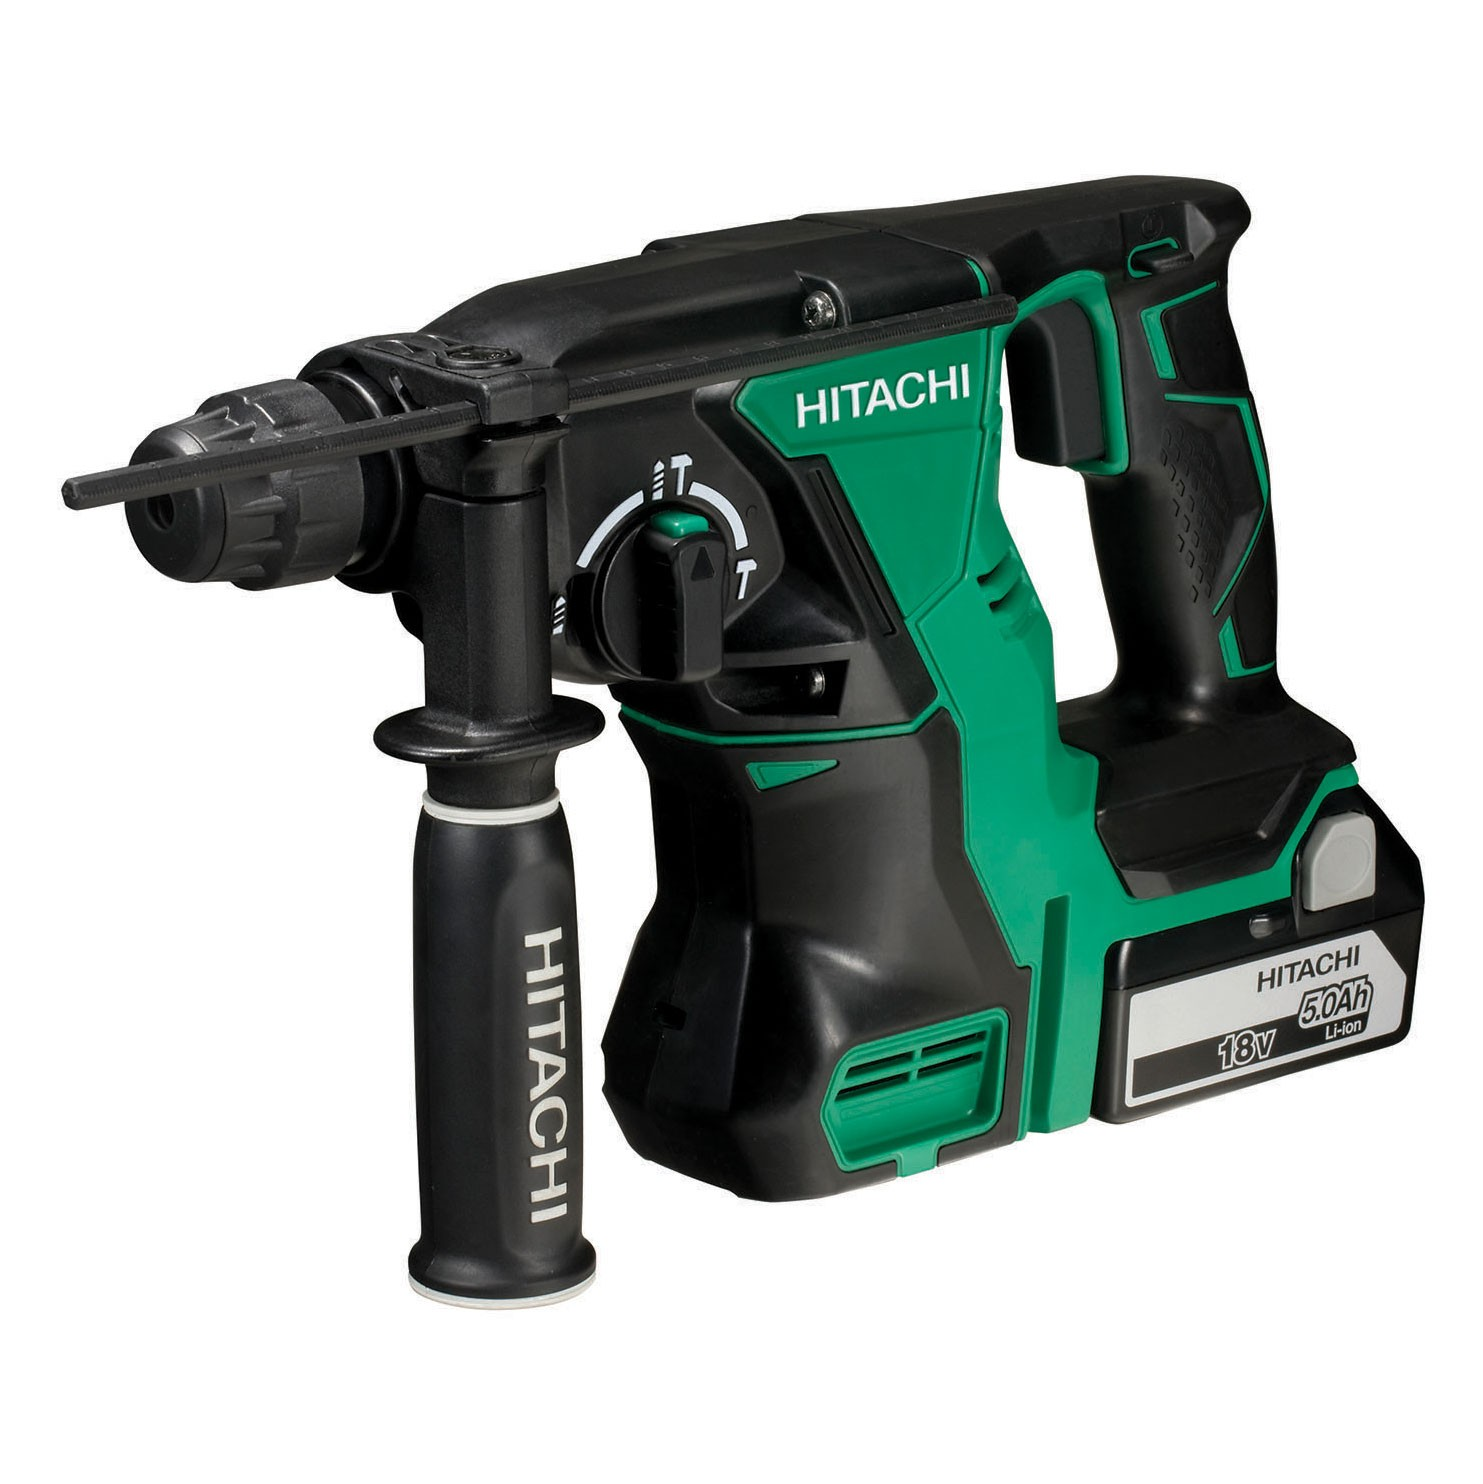 Watch further Cordless moreover Hitachi Dh18dbl Jp 18v Brushless Cordless Sds Plus Hammer Drill Inc 2x 5 0ah Batts also Panasonic Cordless Brushless Drill Driver Ey 74a2lj2g31 further Watch. on cordless drill motor